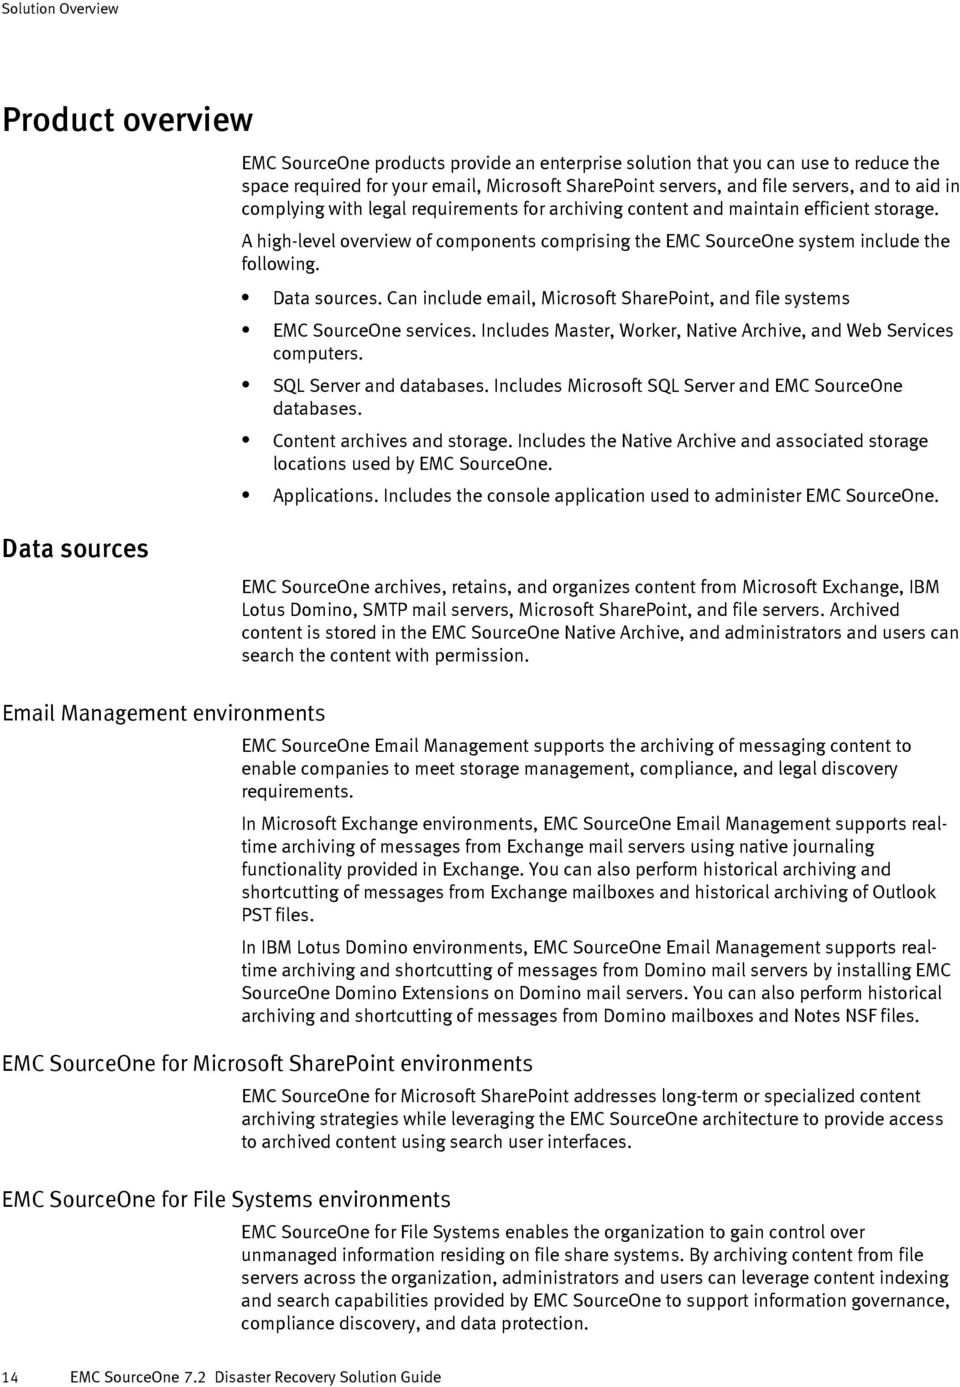 Data sources. Can include email, Microsoft SharePoint, and file systems EMC SourceOne services. Includes Master, Worker, Native Archive, and Web Services computers. SQL Server and databases.